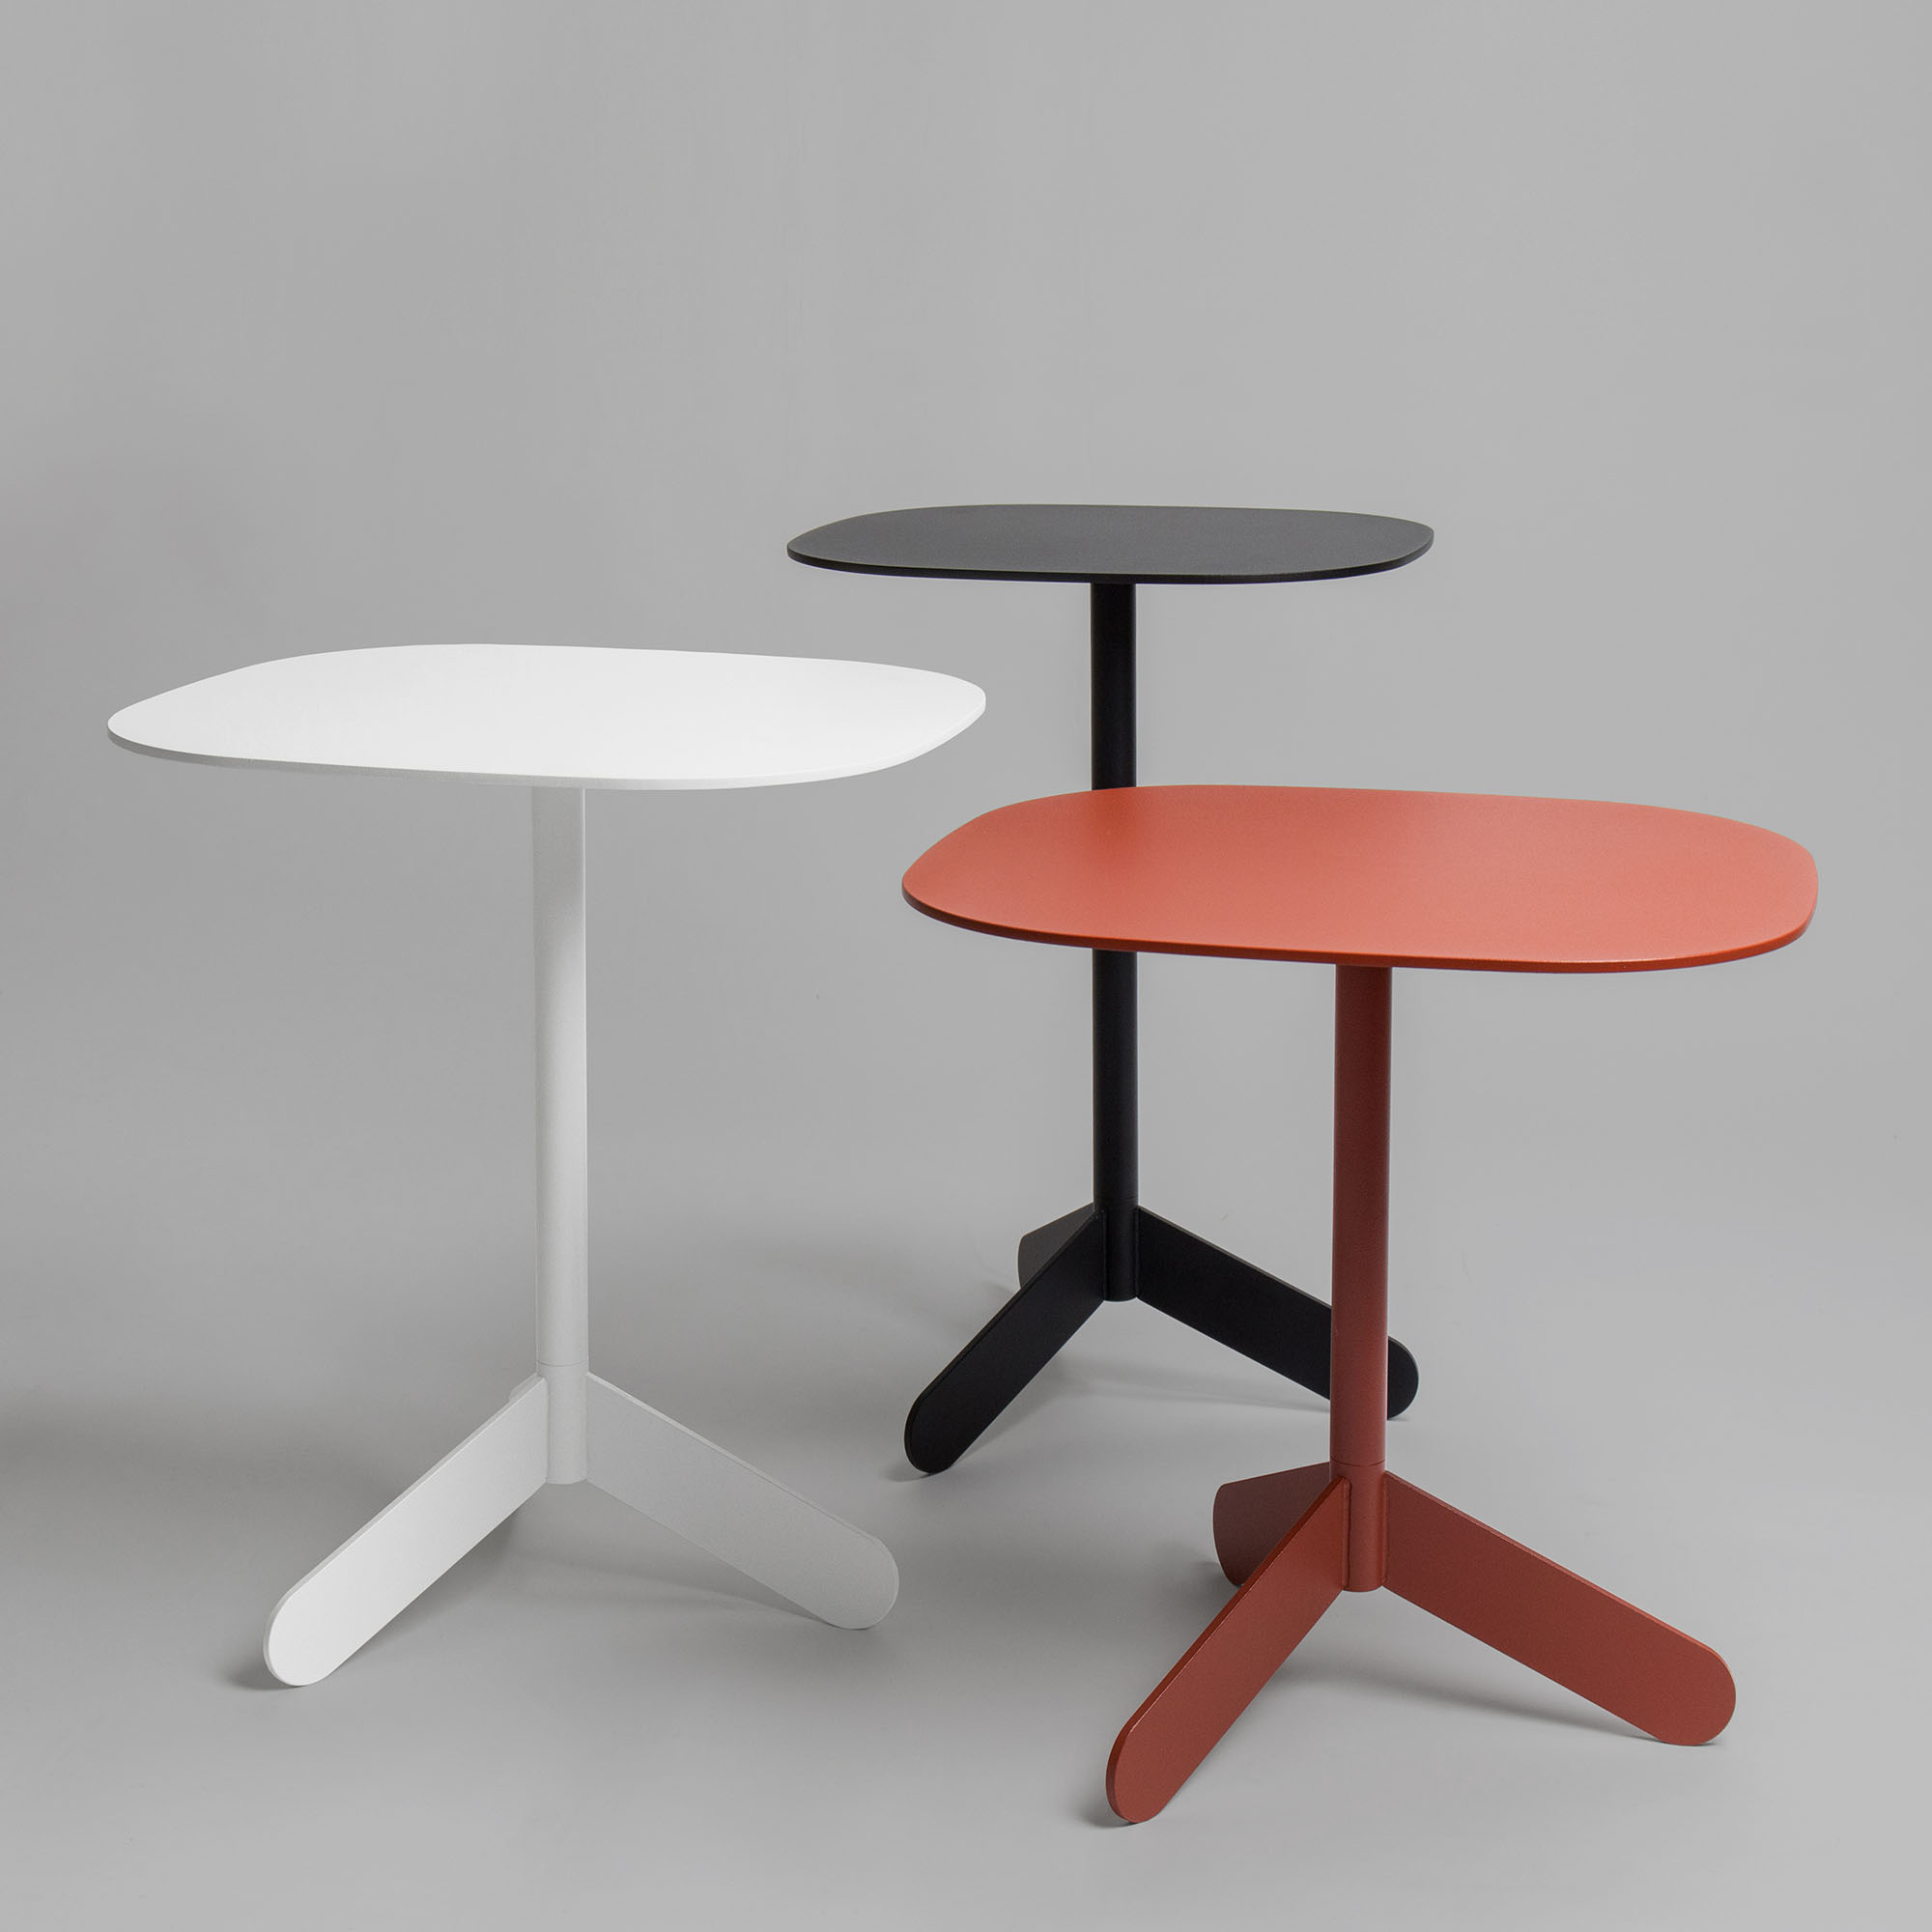 Propellor Tables (2016)